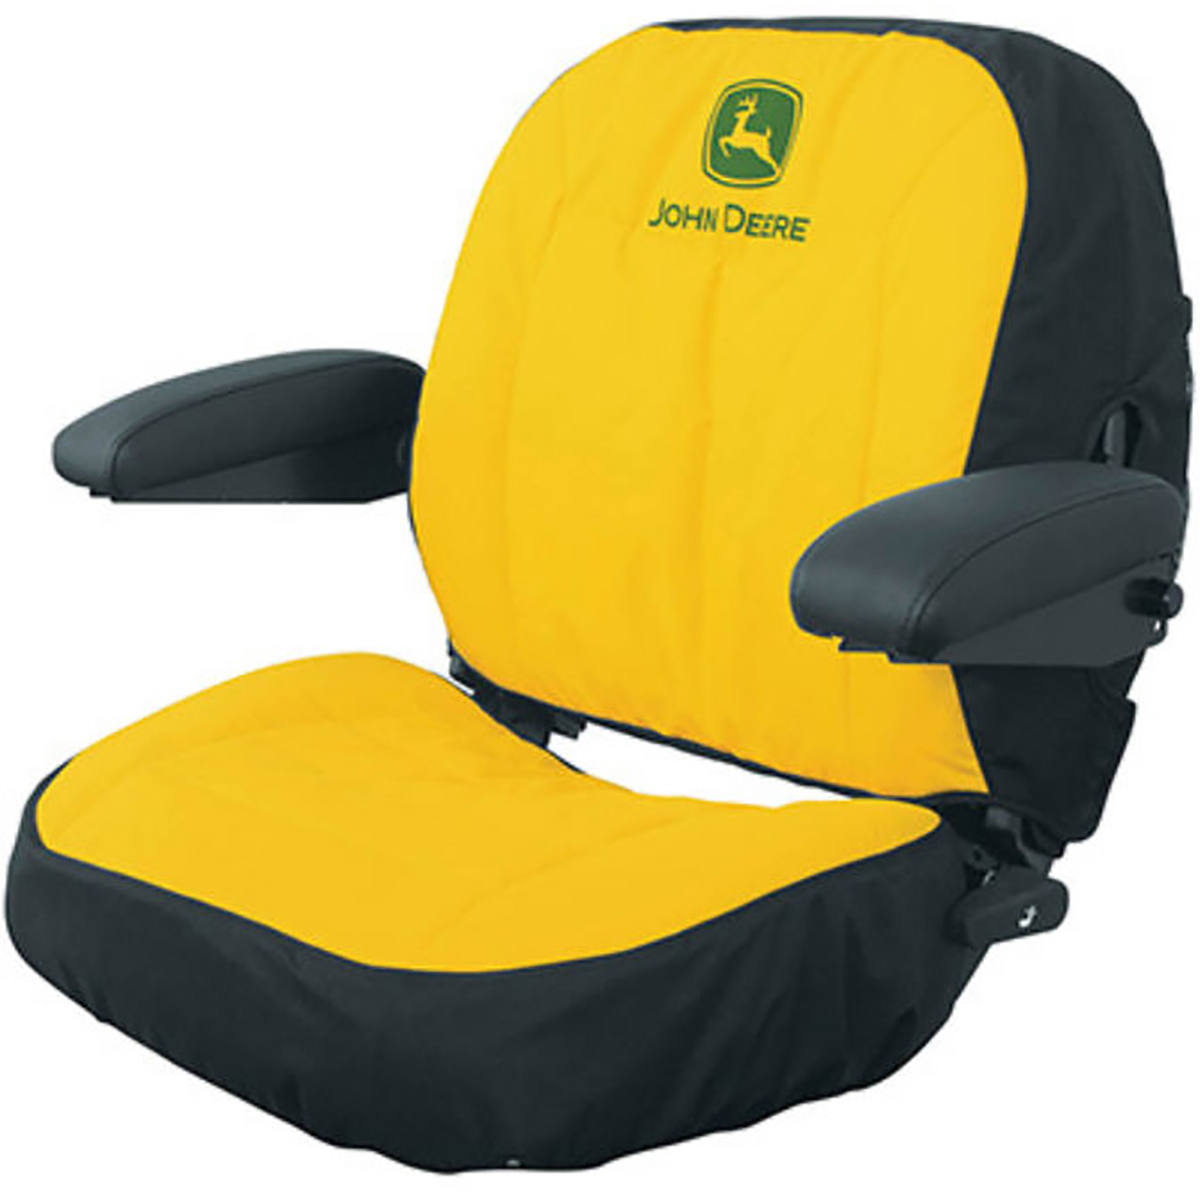 Designed For Specific Size Tractor Seats Lawn Garden Cushioned Seat Back Storage Pockets Zippered Pocket Adds A